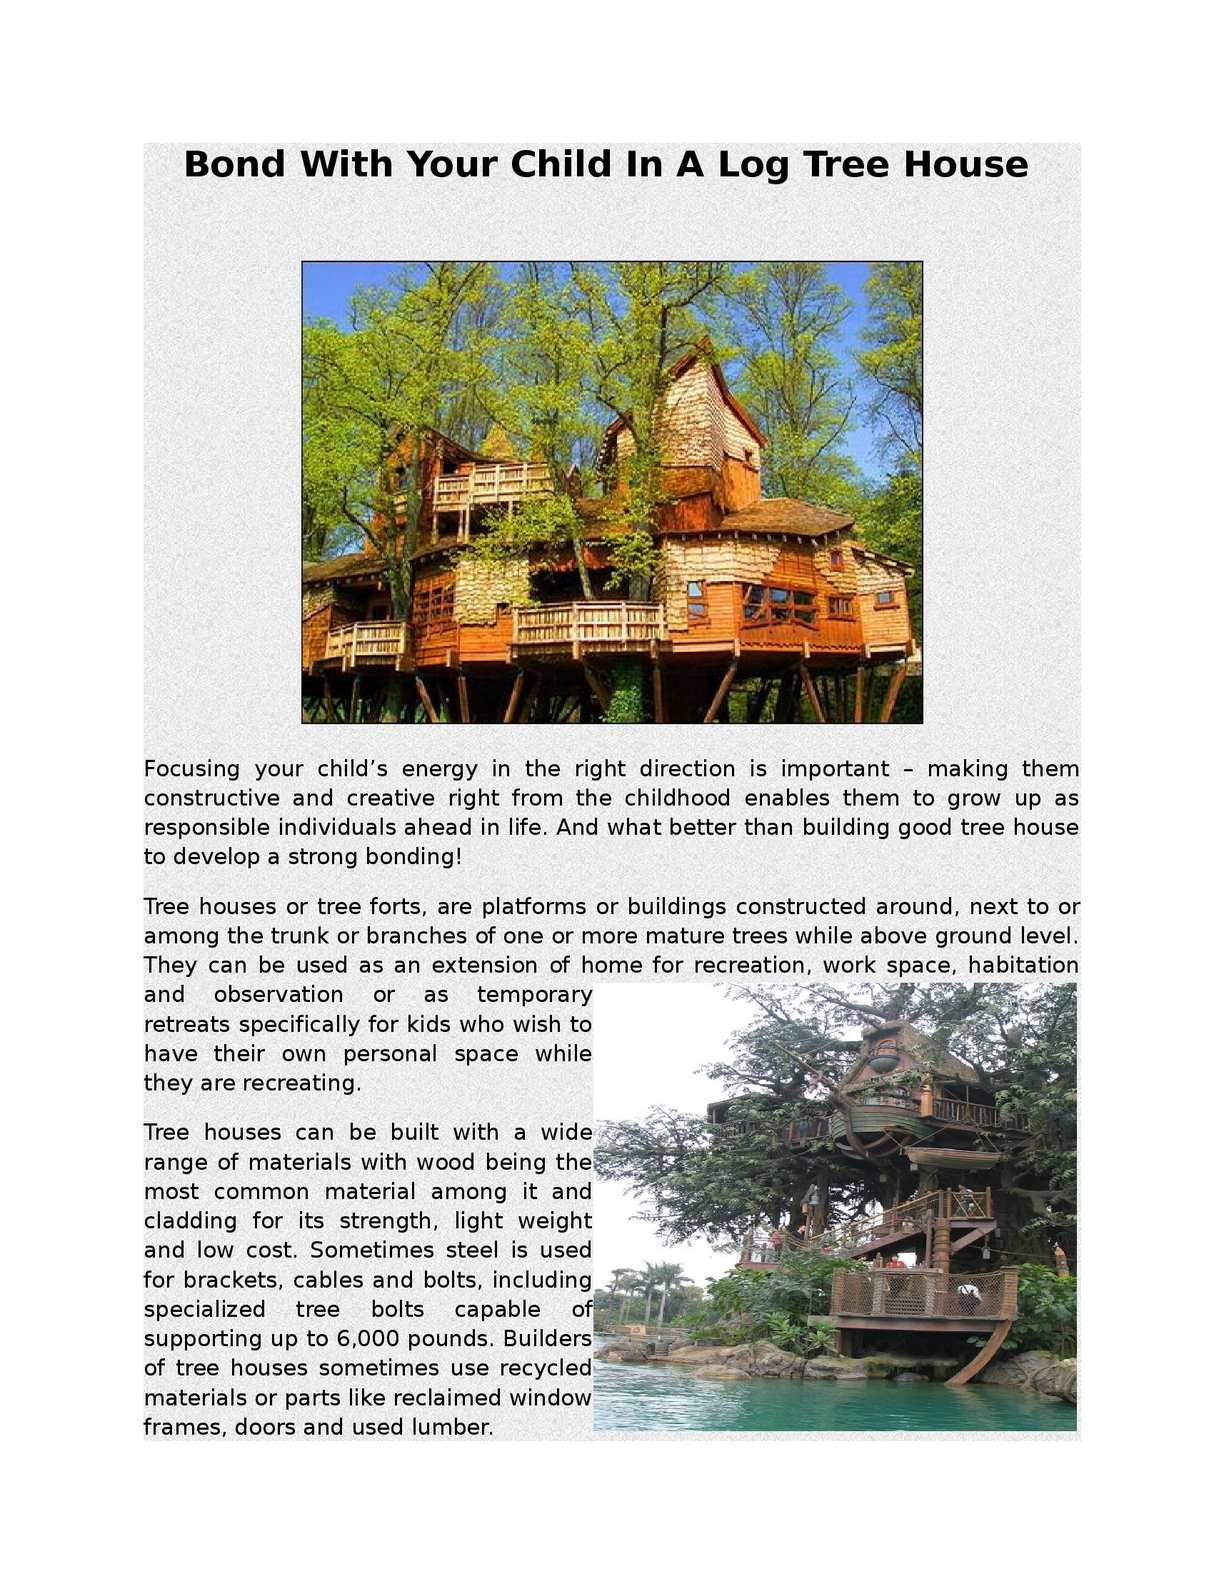 Picture of: Calameo Bond With Your Child In A Log Tree House